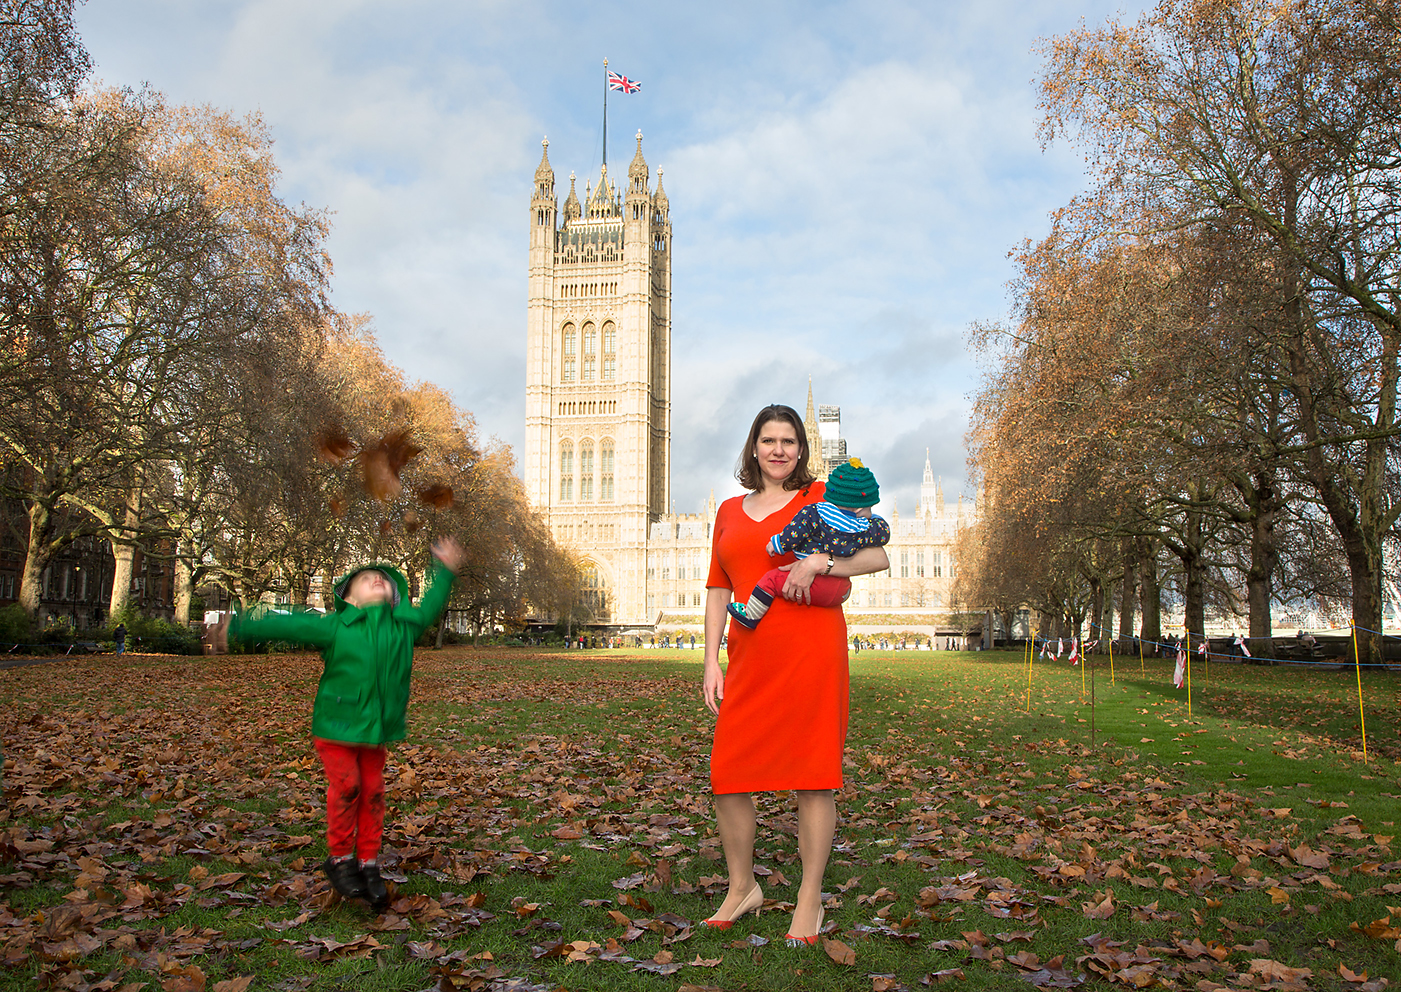 Jo Swinson, Leader of the Liberal Democrats, photographed for #MotherWorks